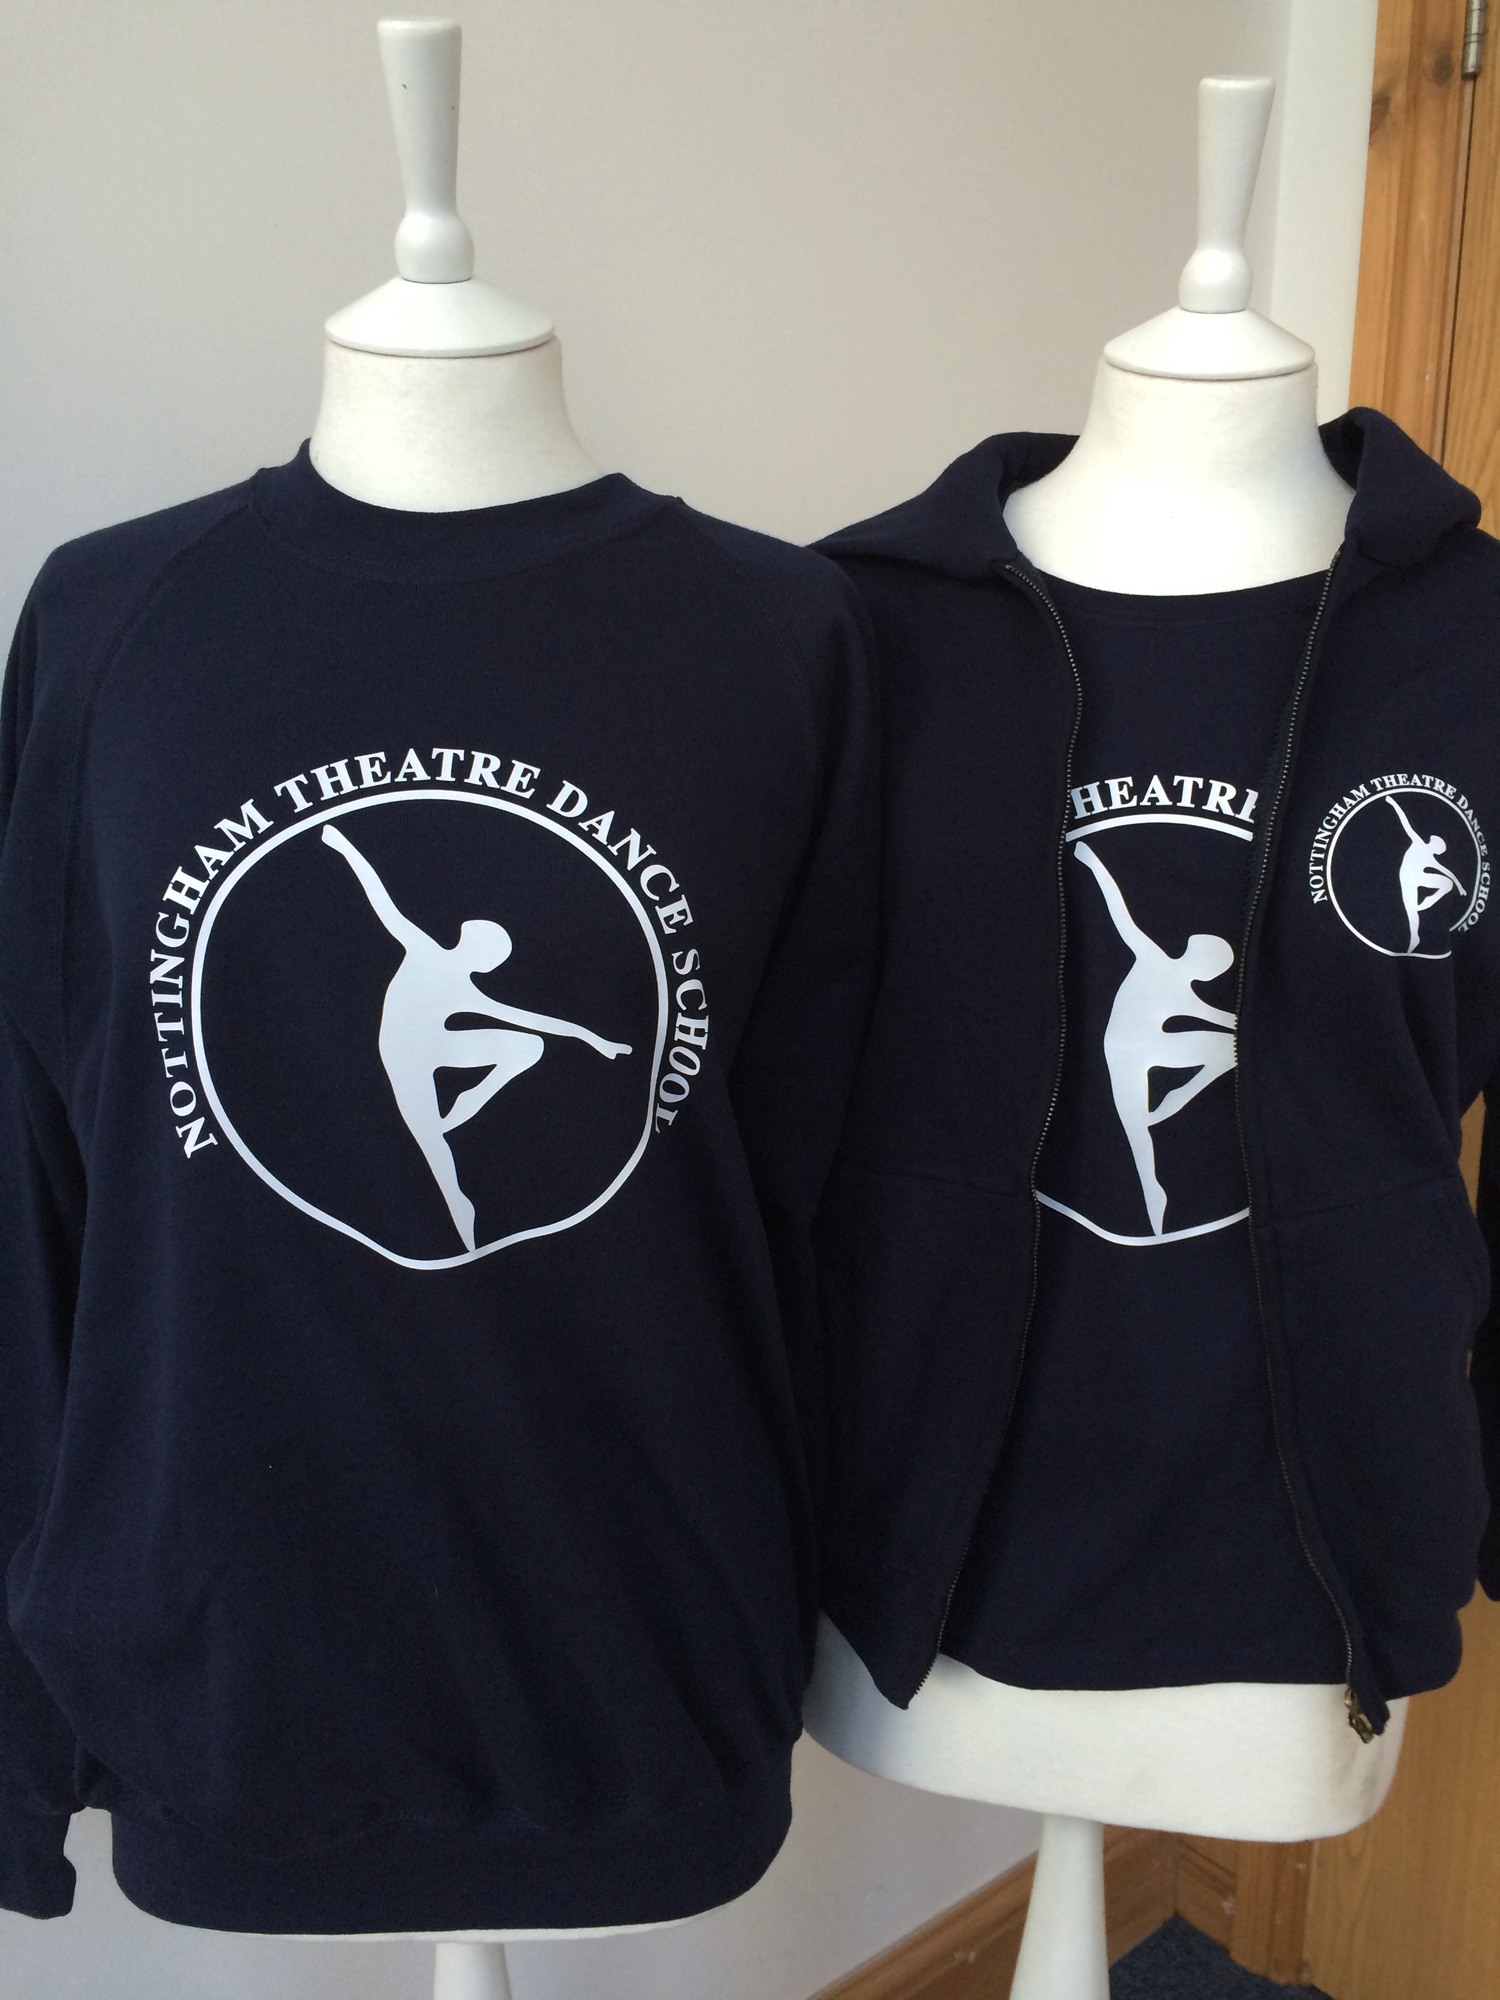 Printed Uniform for Nottingham Theatre Dance School